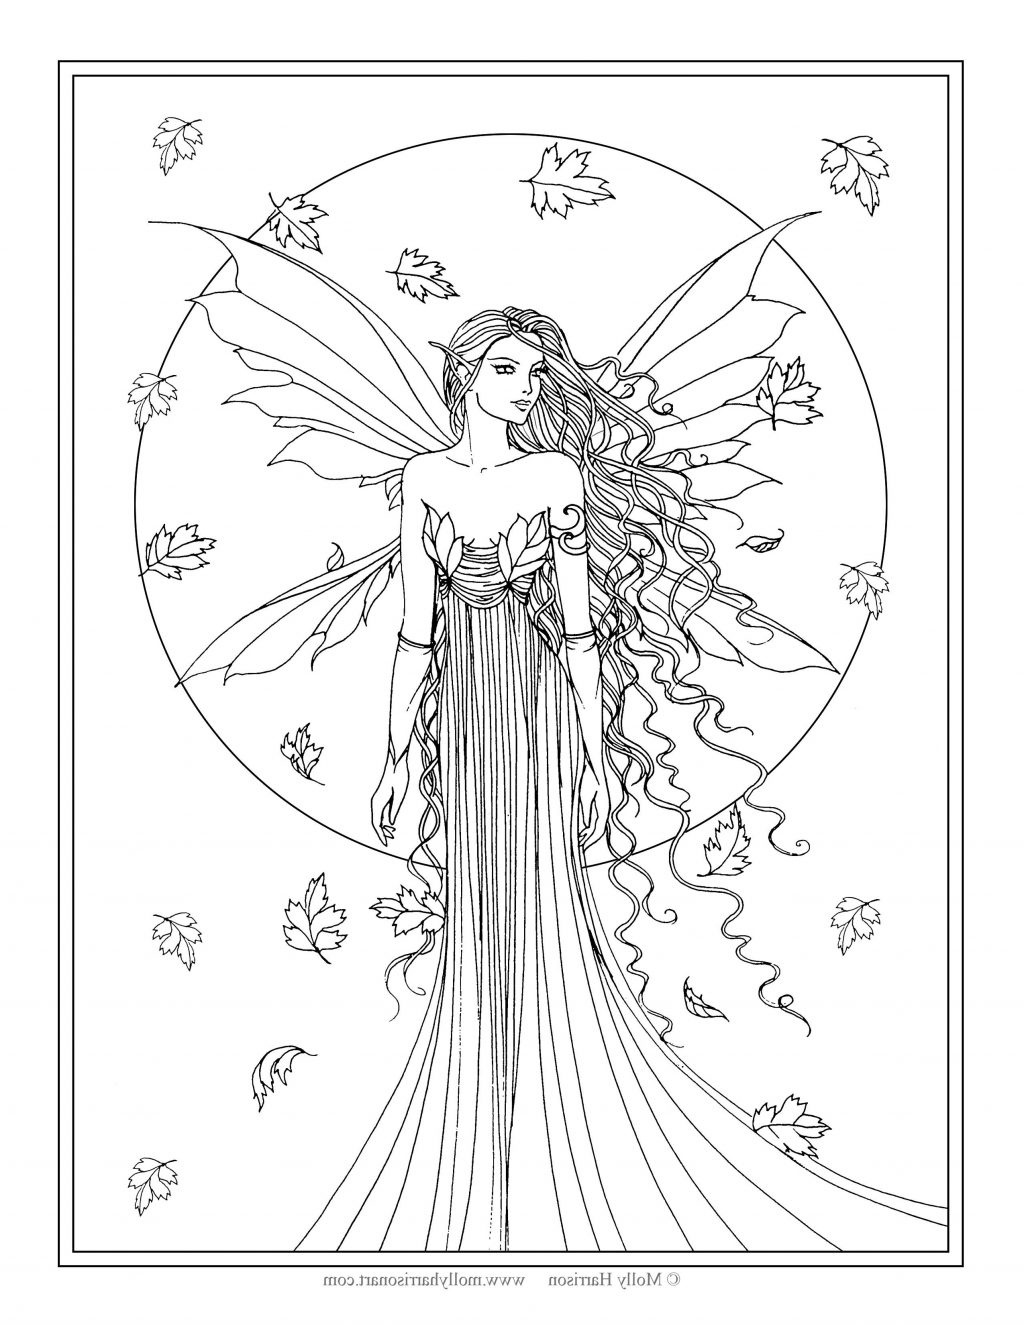 Coloring Page ~ Fairy Coloring Pages For Adults Free Printable - Free Printable Coloring Pages Fairies Adults